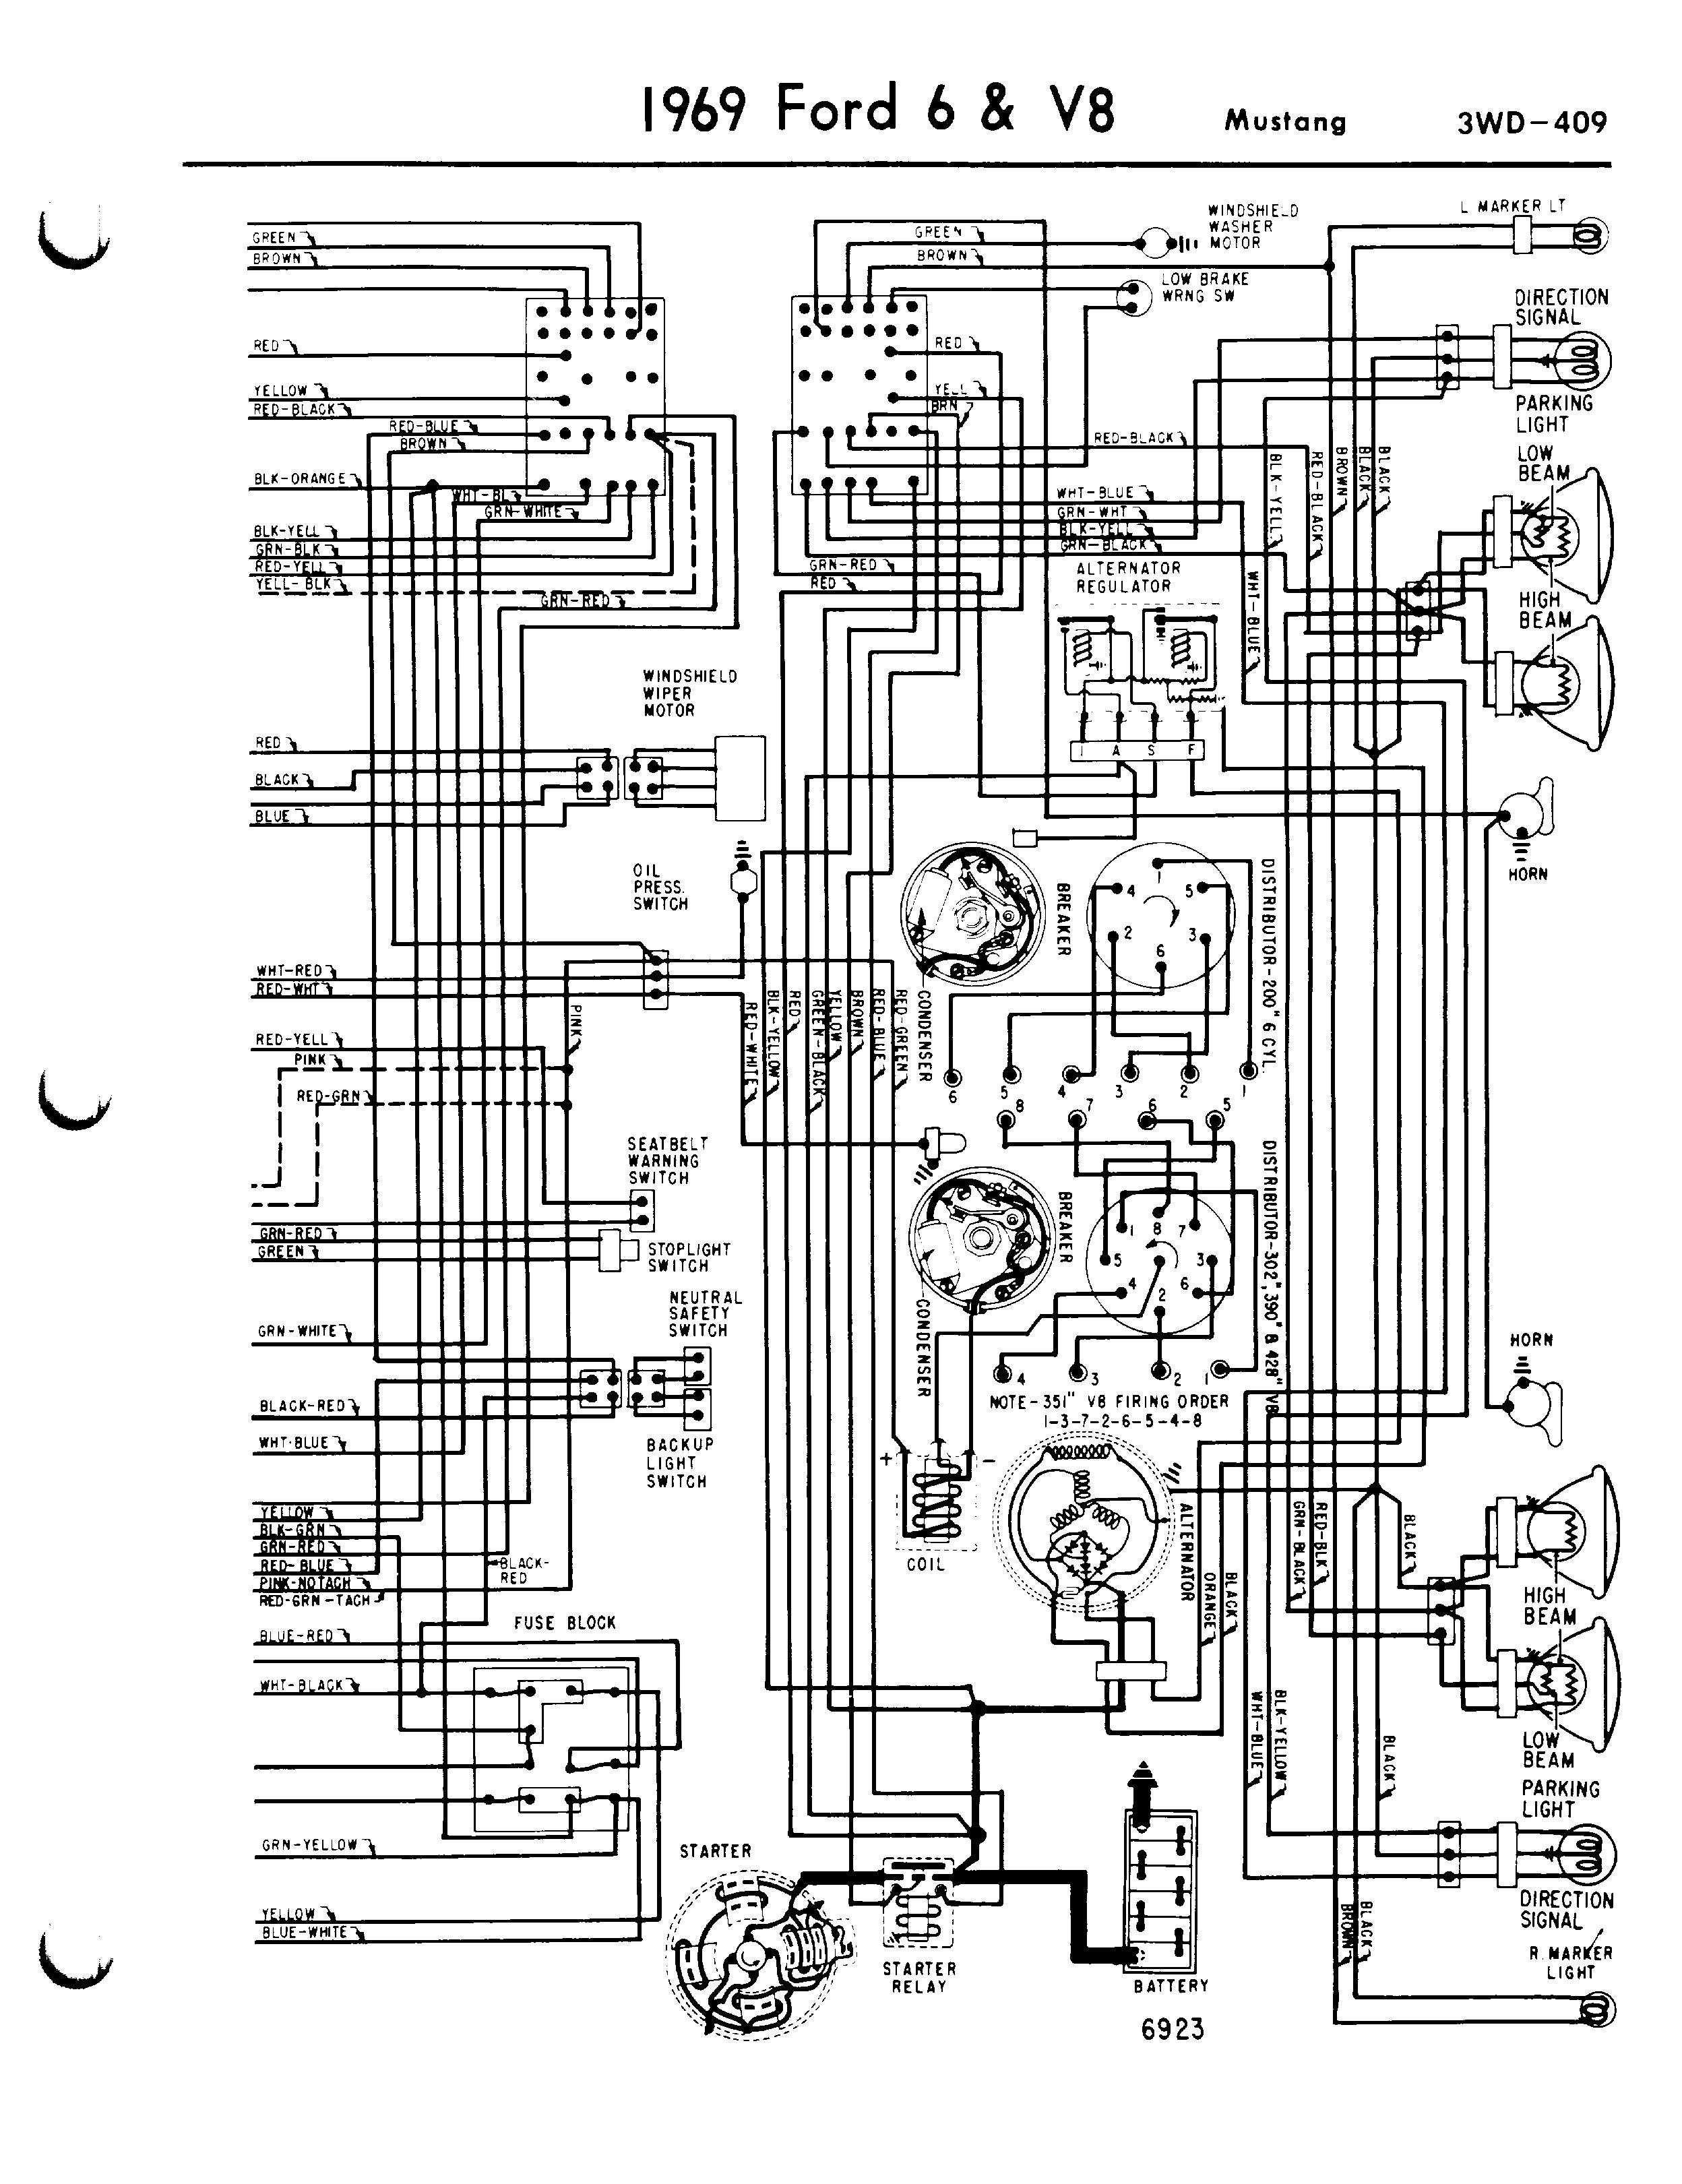 Amazing 1967 Ford Mustang Stereo Wiring Diagram Basic Electronics Wiring Wiring Cloud Waroletkolfr09Org